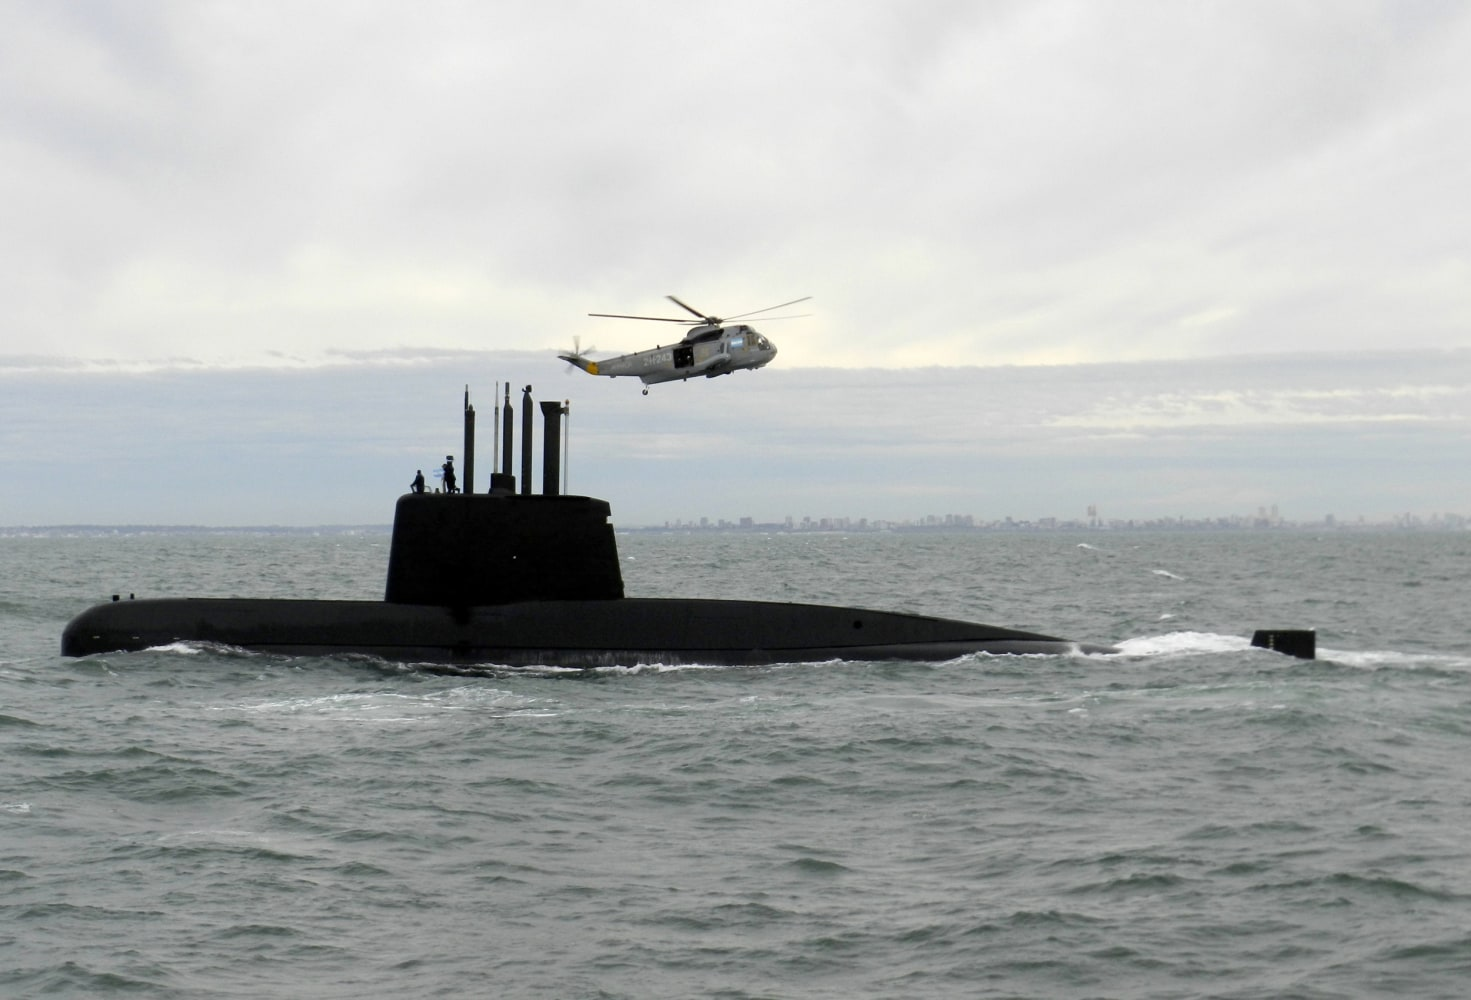 Argentina navy loses contact with submarine with 44 crew on board